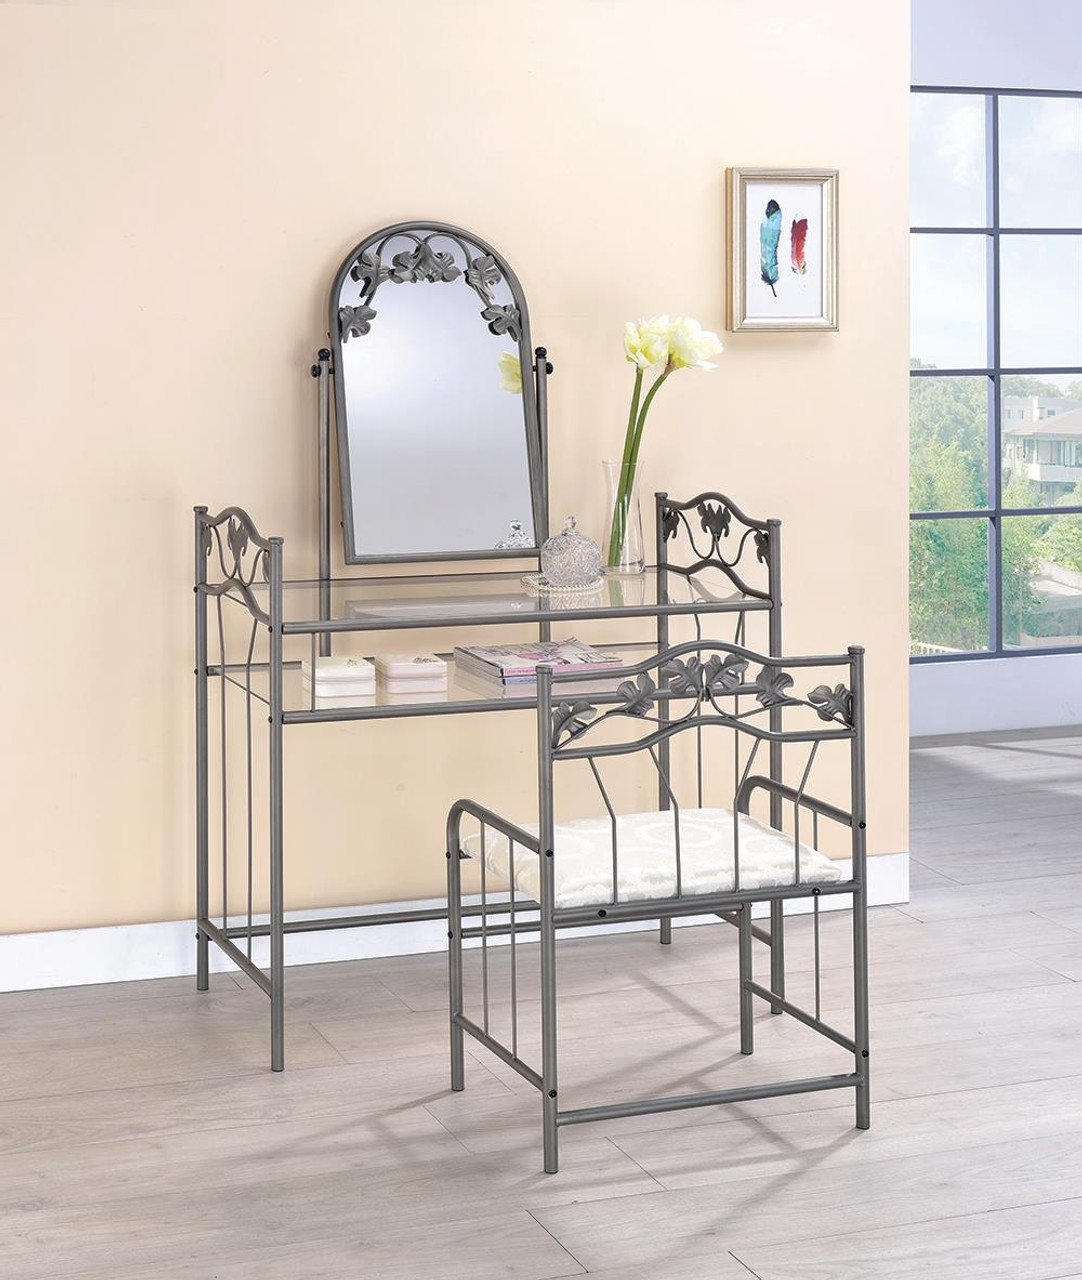 Coaster Ivory 2 Piece Metal Vanity Set With Glass Top Pewter And Ivory 2734 On Sale At Spokane Furniture Company Serving Spokane Post Falls Coeur D Alene Wa Spokane Valley Post Falls